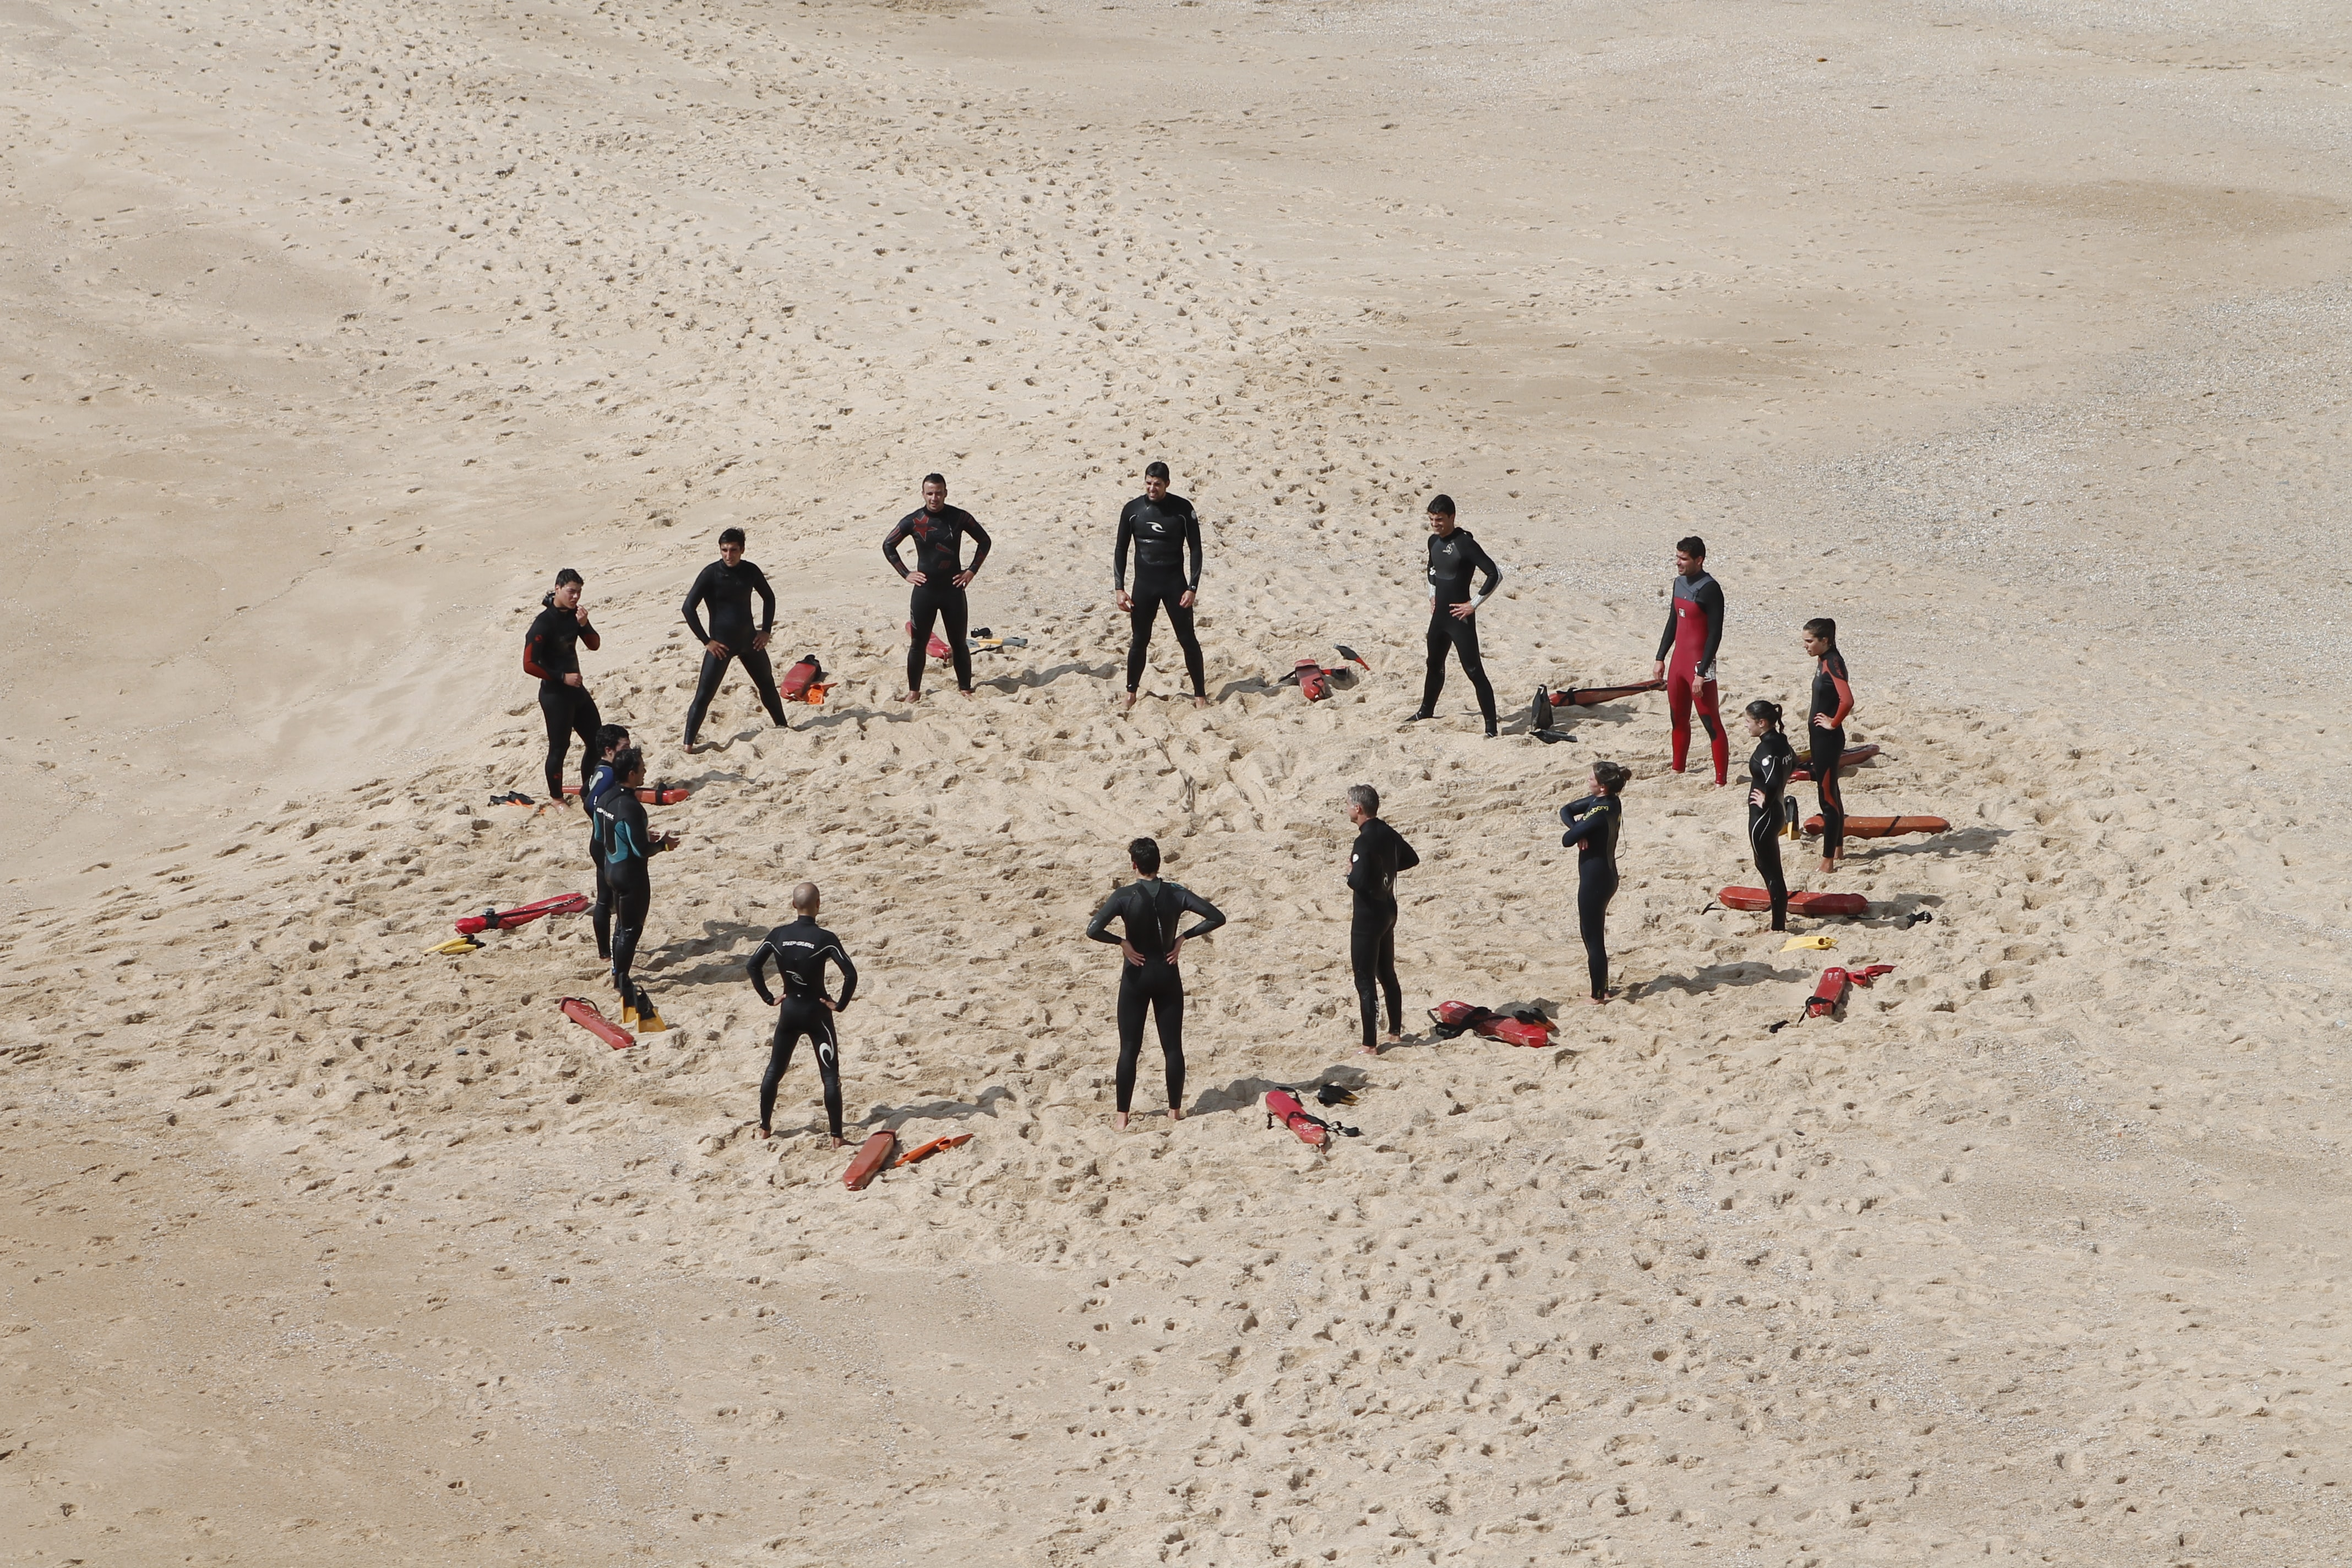 A circle of lifeguards in wetsuits doing a training course on a sandy beach